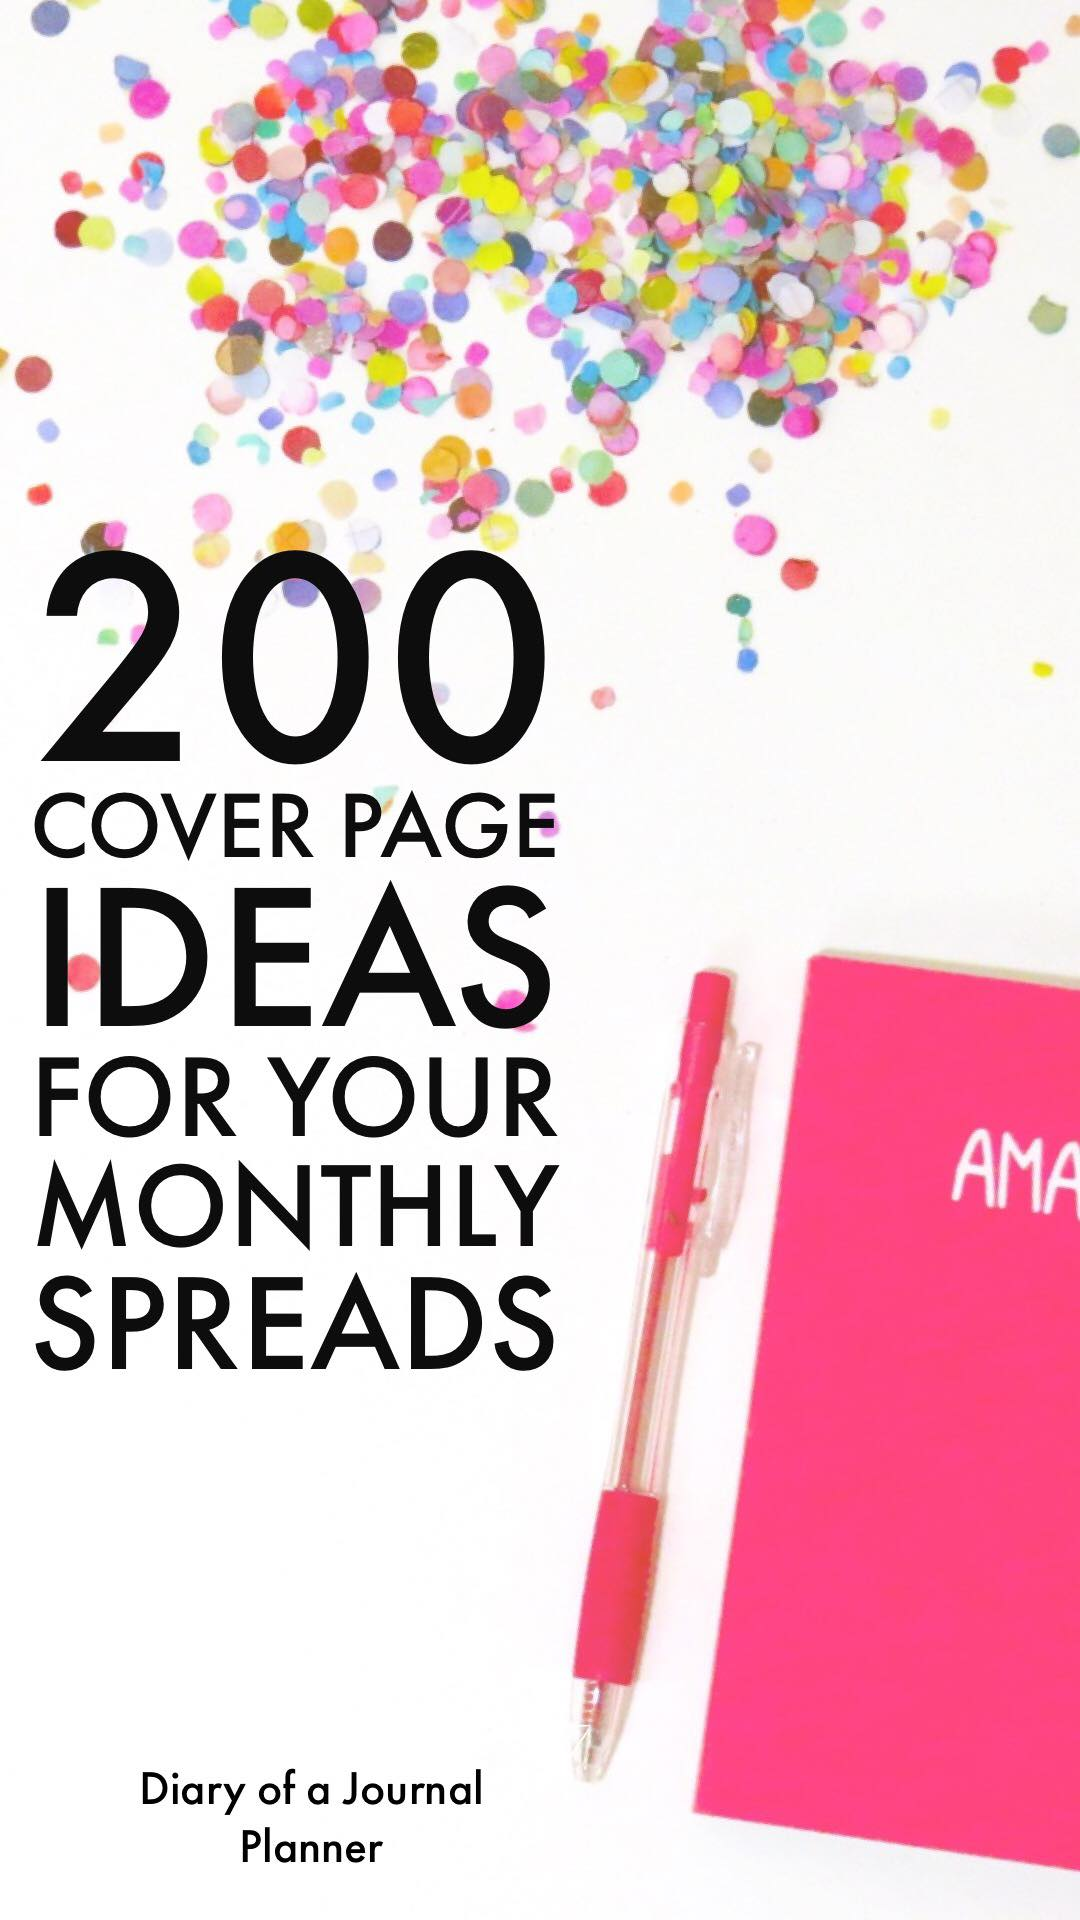 Ideas for monthly theme cover pages in Bullet Journal